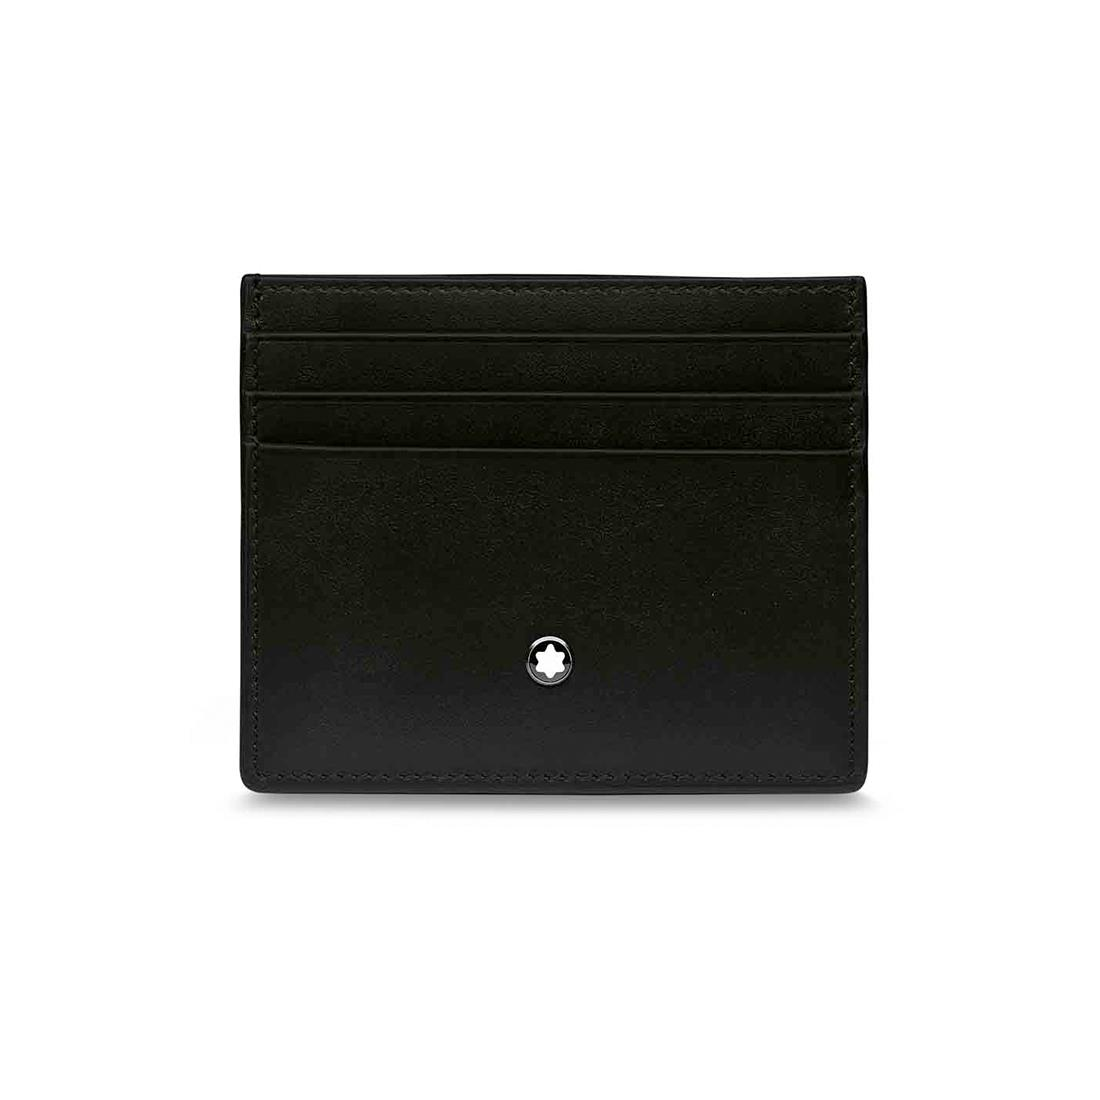 MONTBLANC FOR BMW CREDIT CARD HOLDER